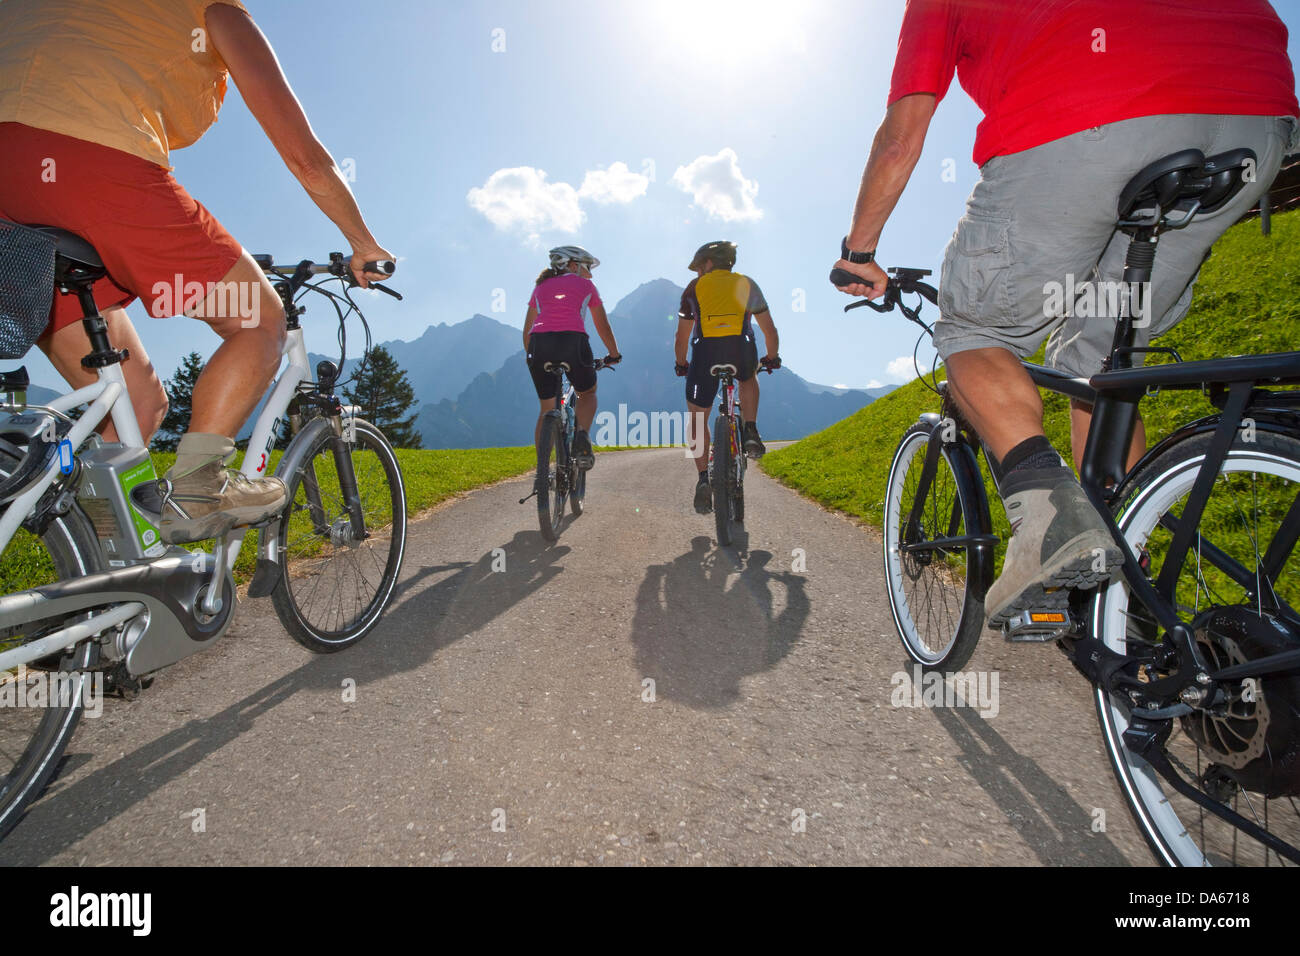 Electric bike, Ebike, electric bicycle, Adelboden, canton, Bern, Bernese Oberland, summer sport, bicycle, bicycles, - Stock Image